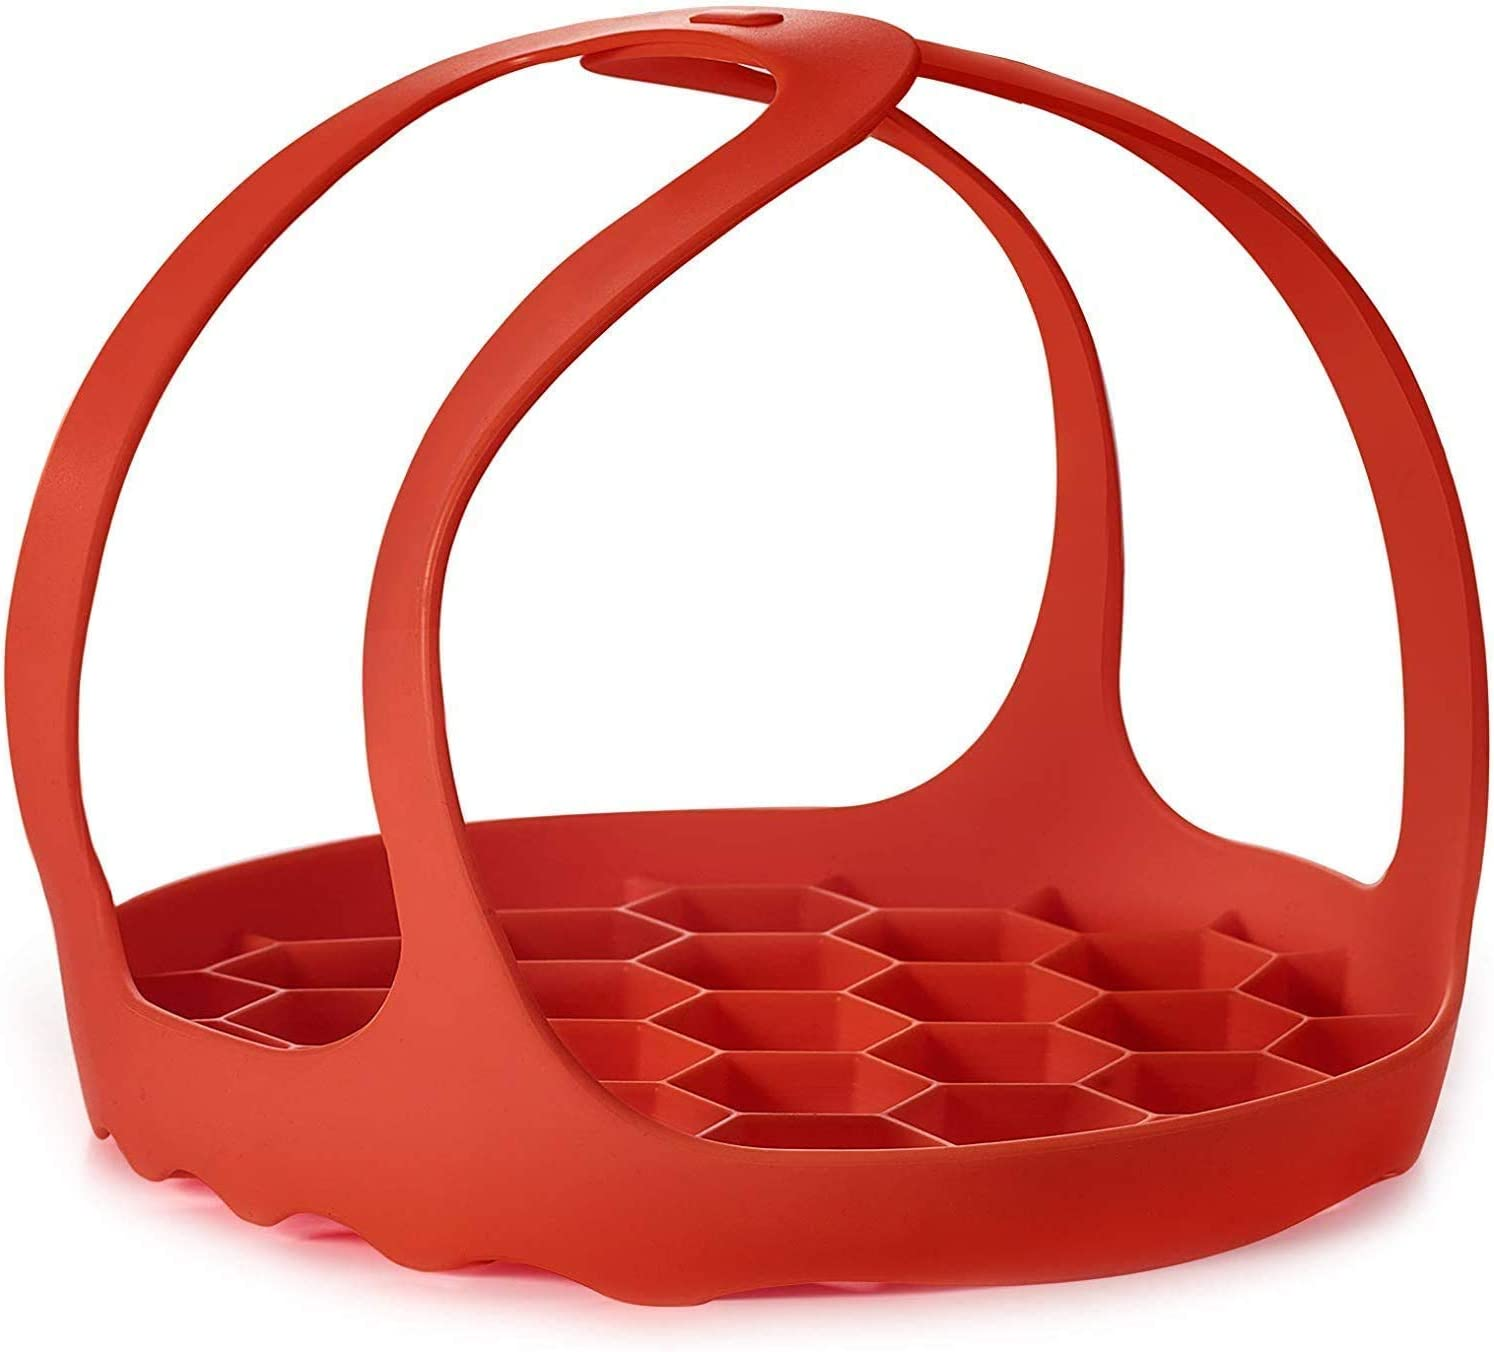 Silicone Trivet For Instant Pot| Fits 6,8 Qt Instapot, Ninja Foodi and Other Pressure Cookers | 3 in 1 - Bakeware Pan Sling Lifter, Egg Rack, and Roasting Rack